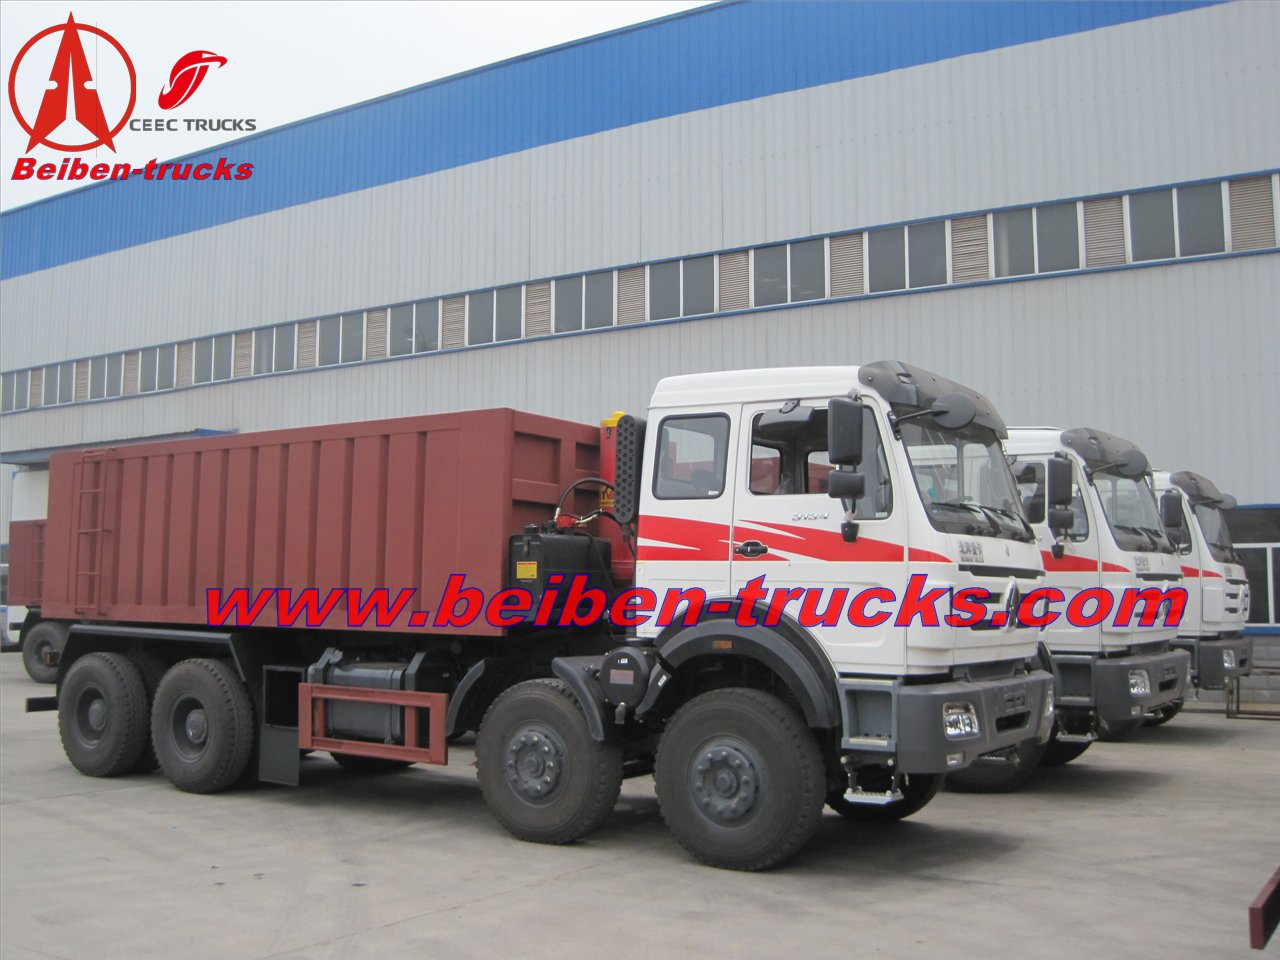 beiben 3134 tipper trucks manufacturer from china baotou